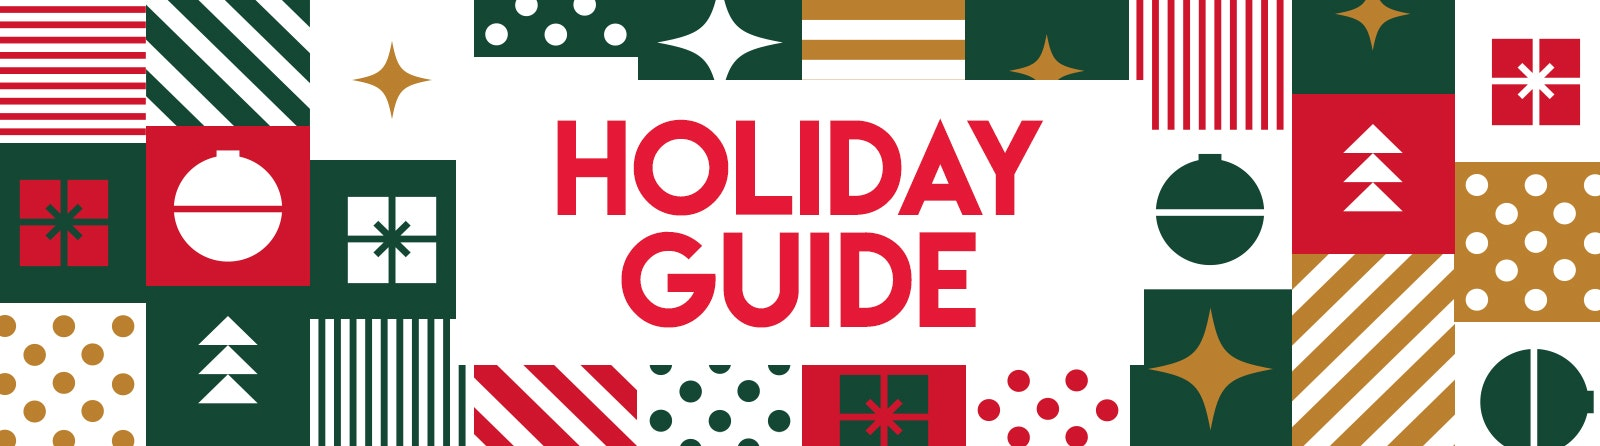 Holiday Guide banner